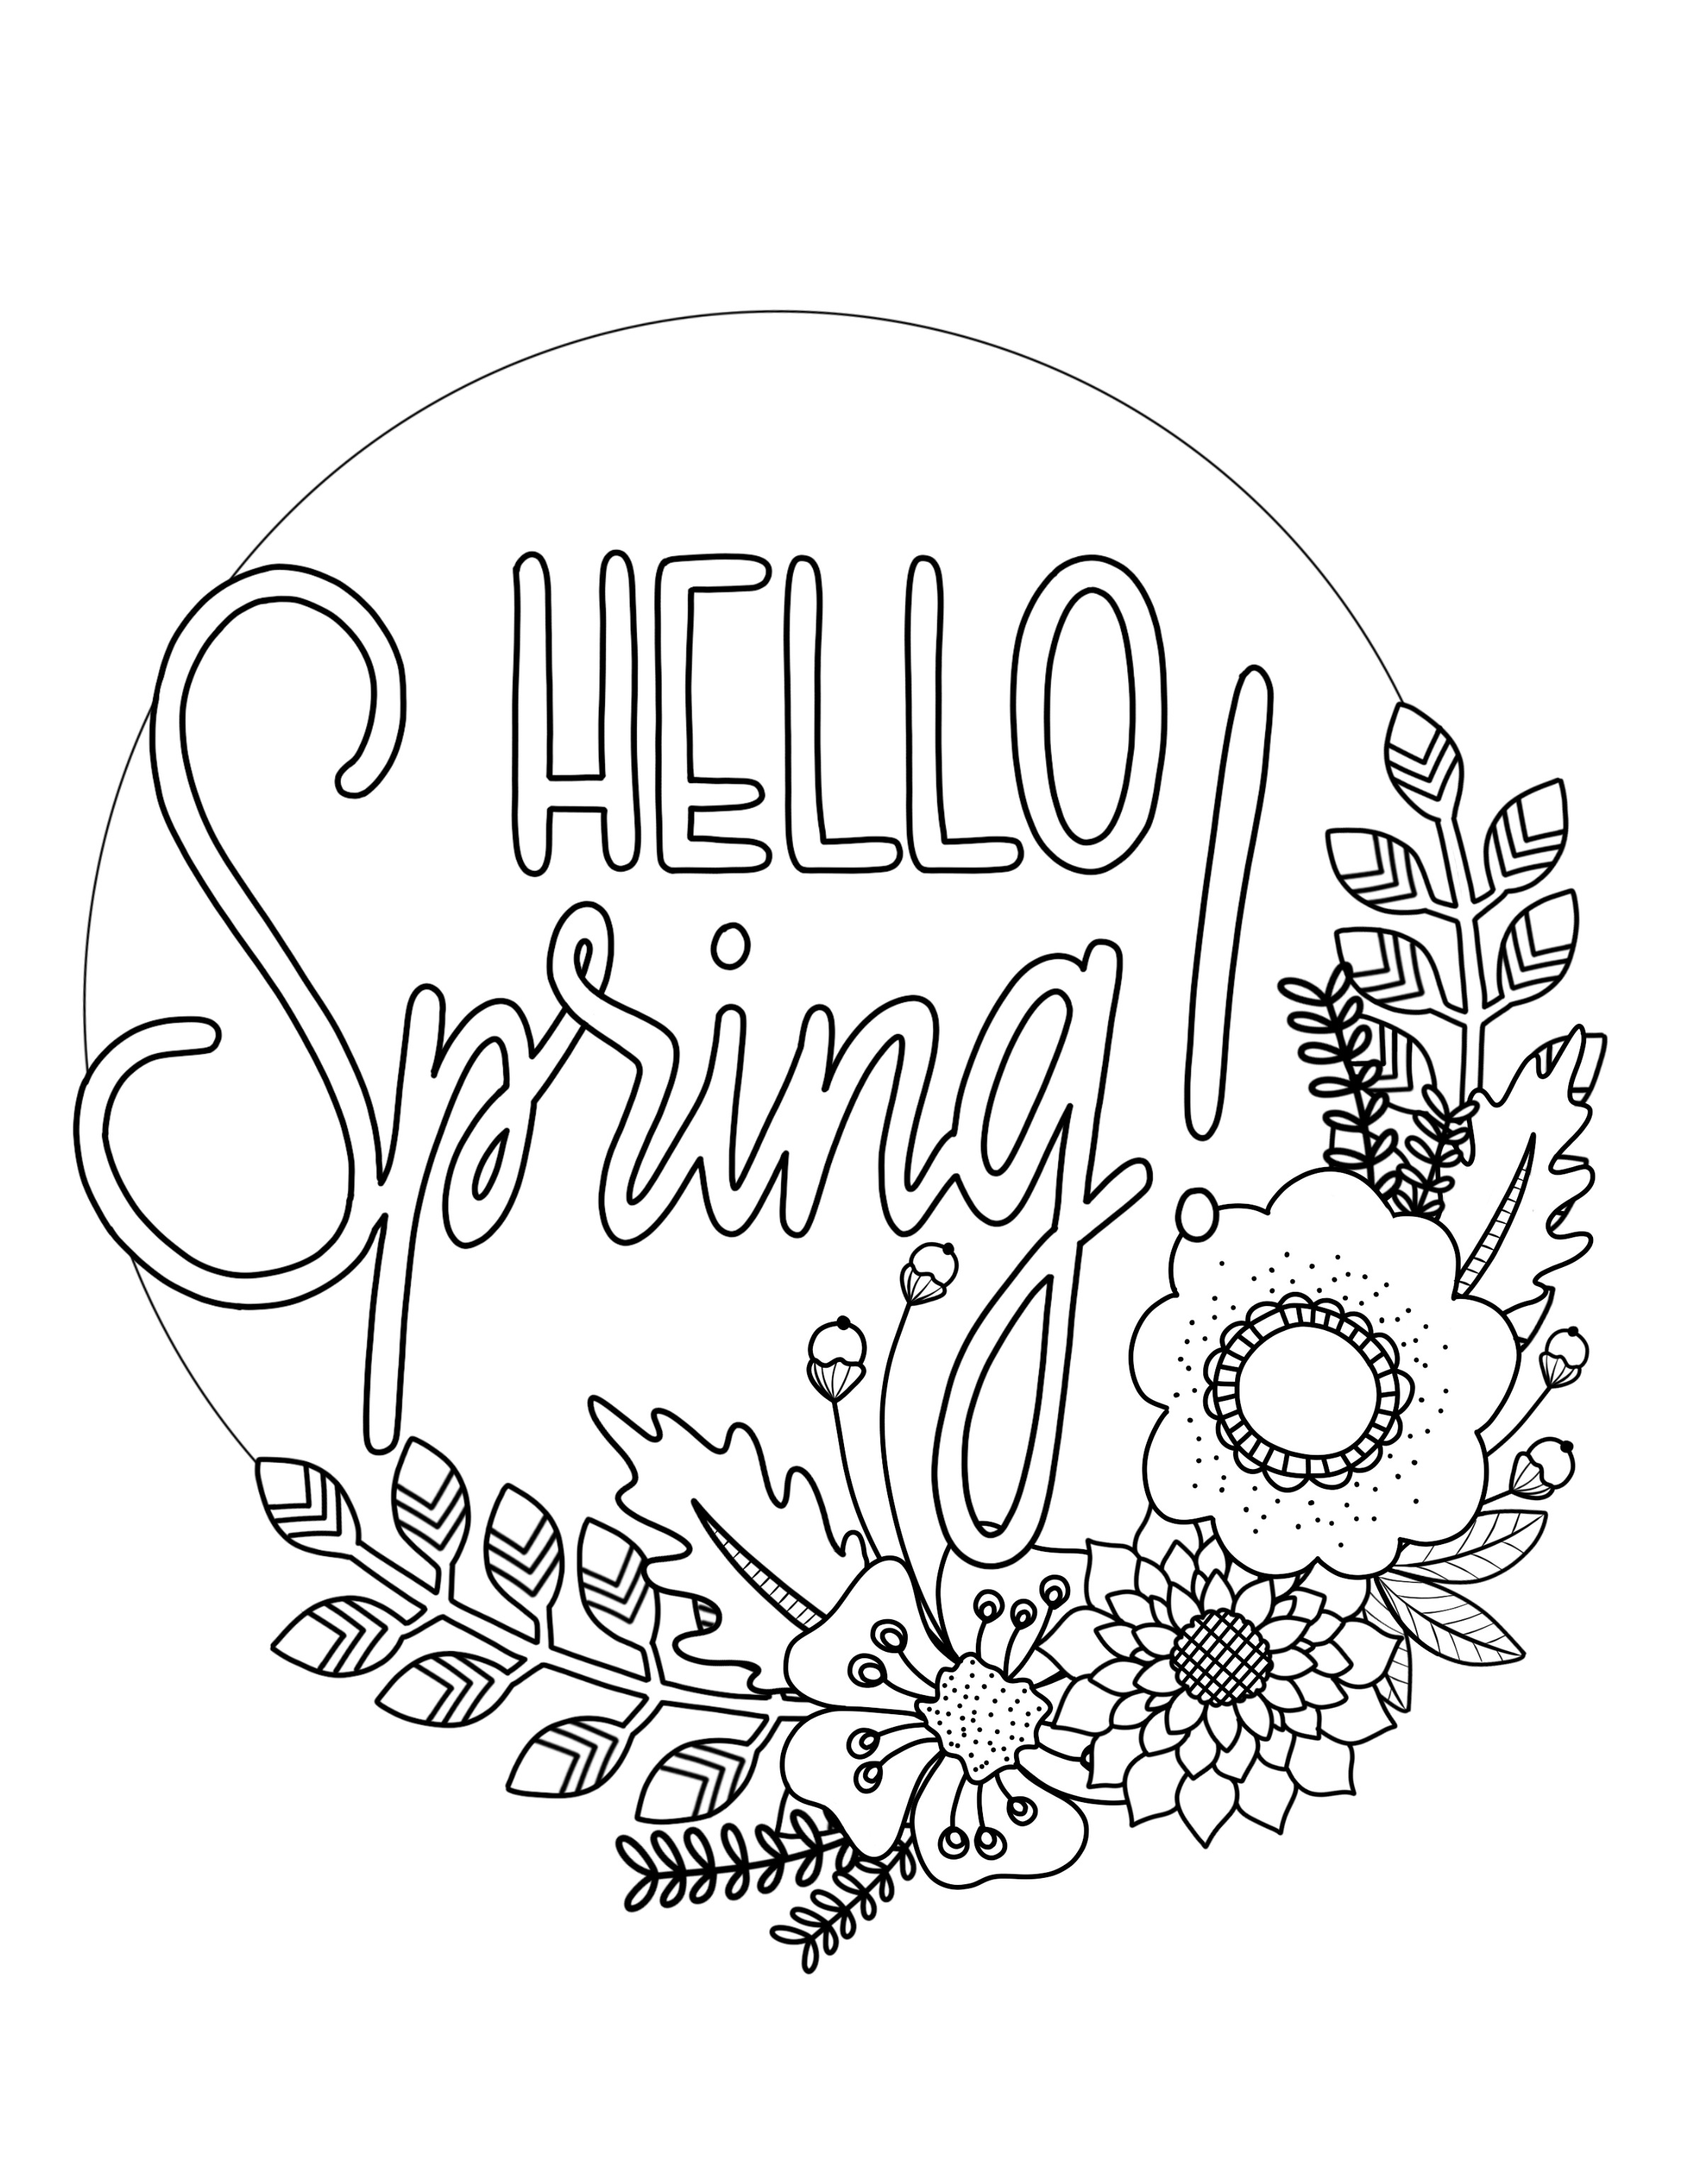 Coloring Pages Spring Printable Spring Coloring Page Over The Big Moon